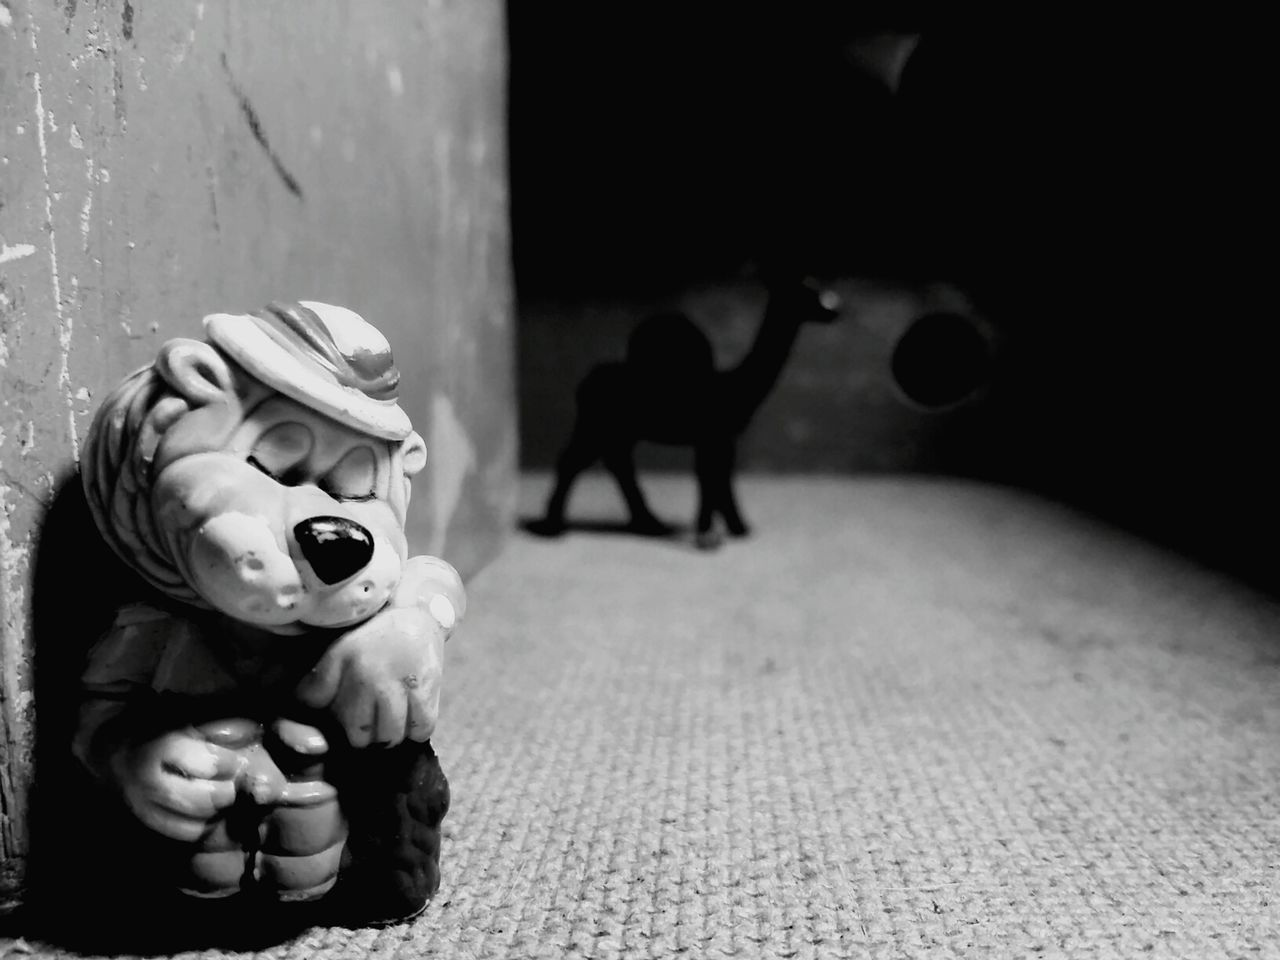 toy, animal representation, indoors, no people, table, childhood, stuffed toy, close-up, day, animal themes, mammal